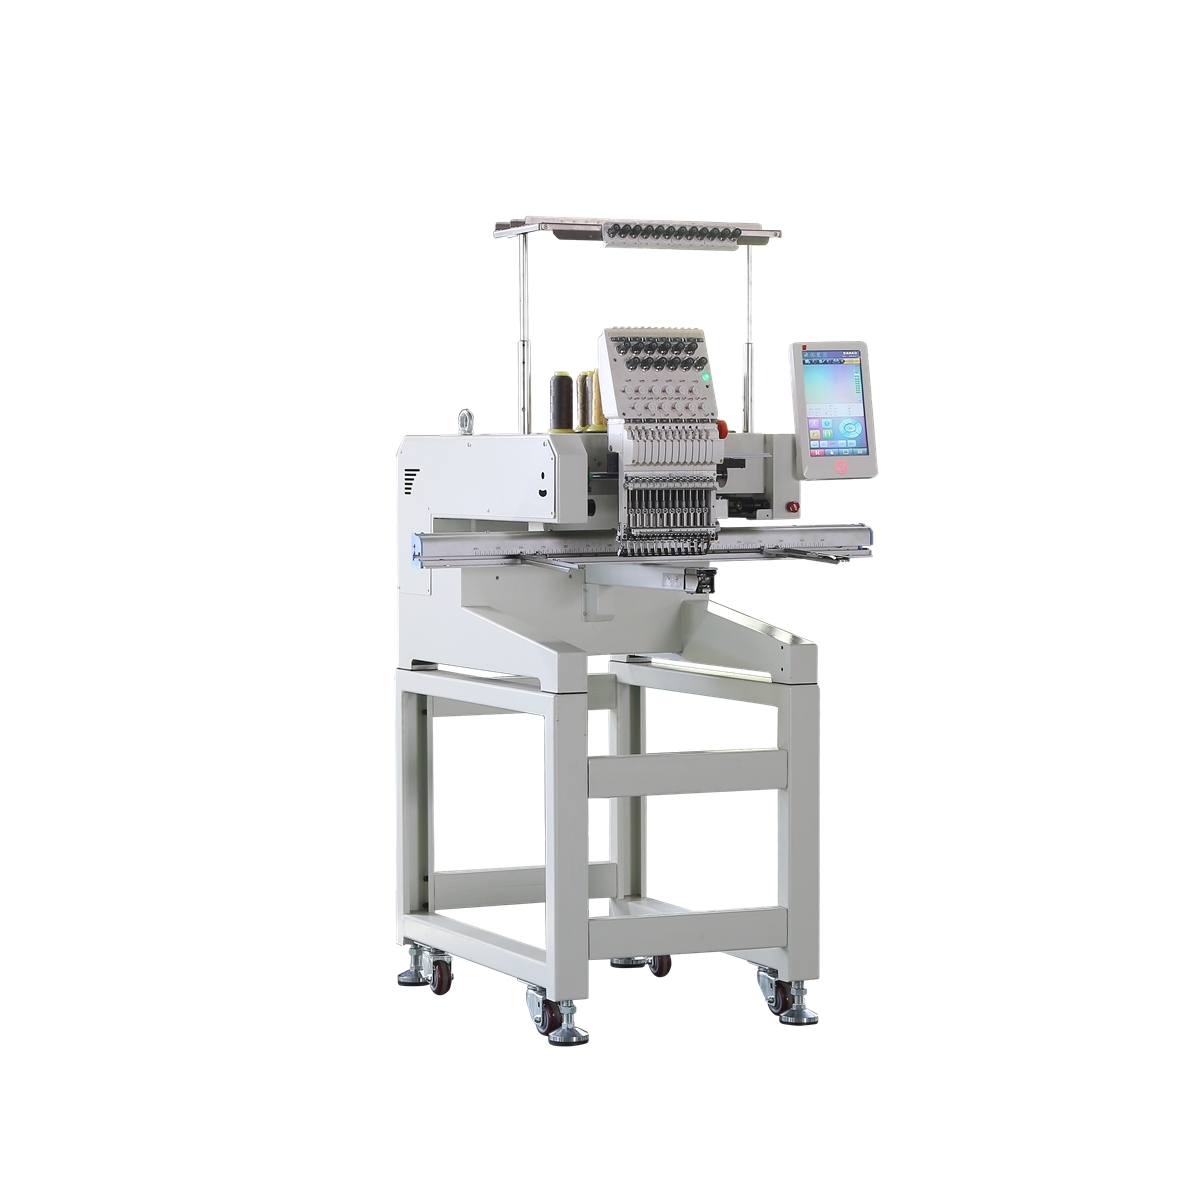 How to choose a good embroidery machine manufacturer?